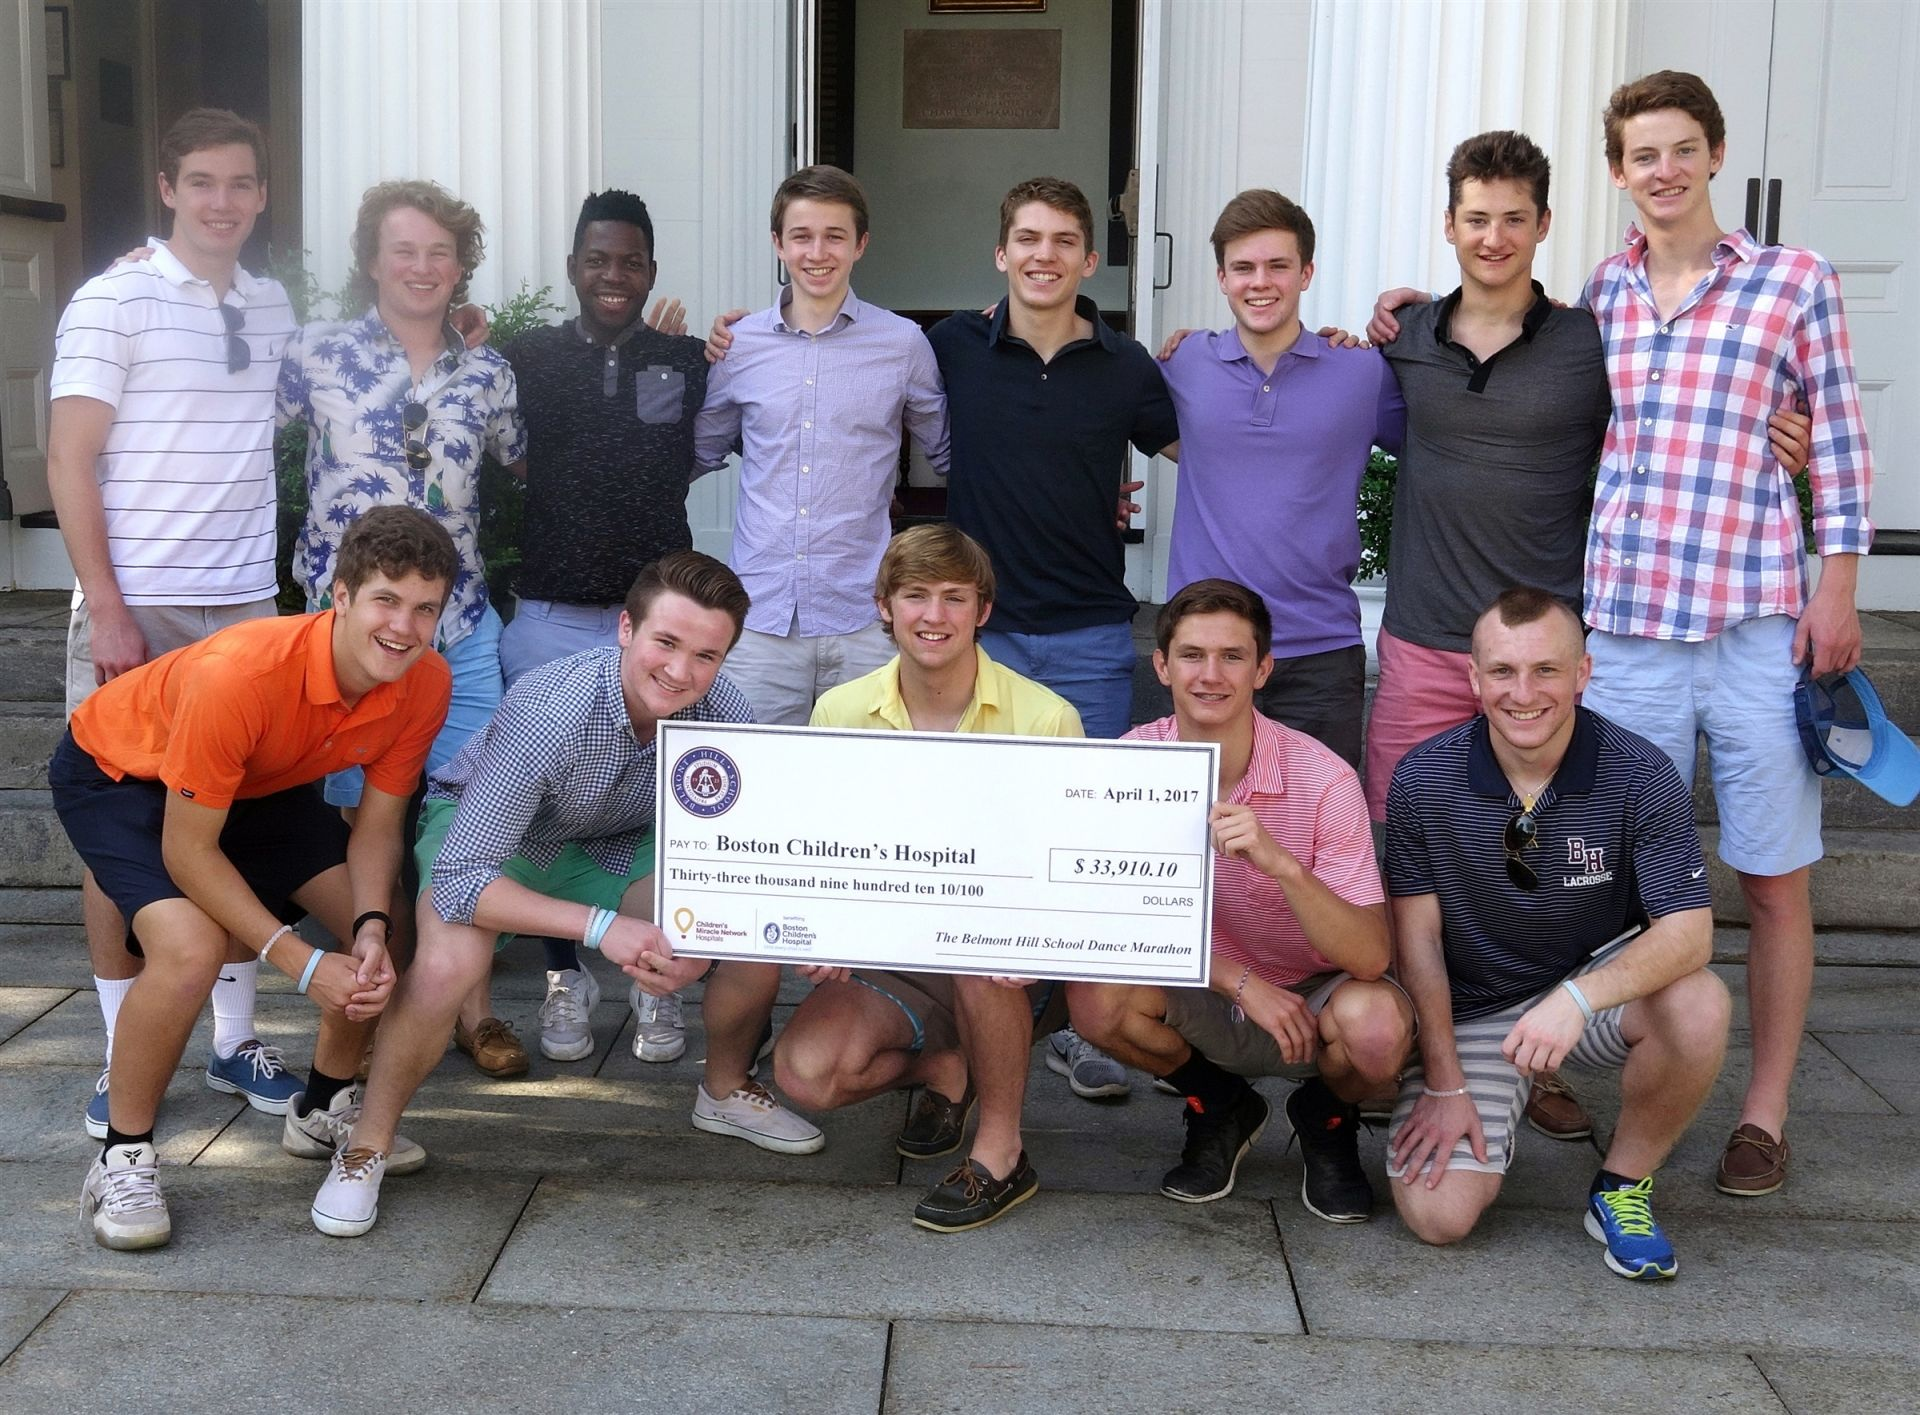 After a successful Dance Marathon, Belmont Hill students presented Children's Hospital with a check for $33,910.